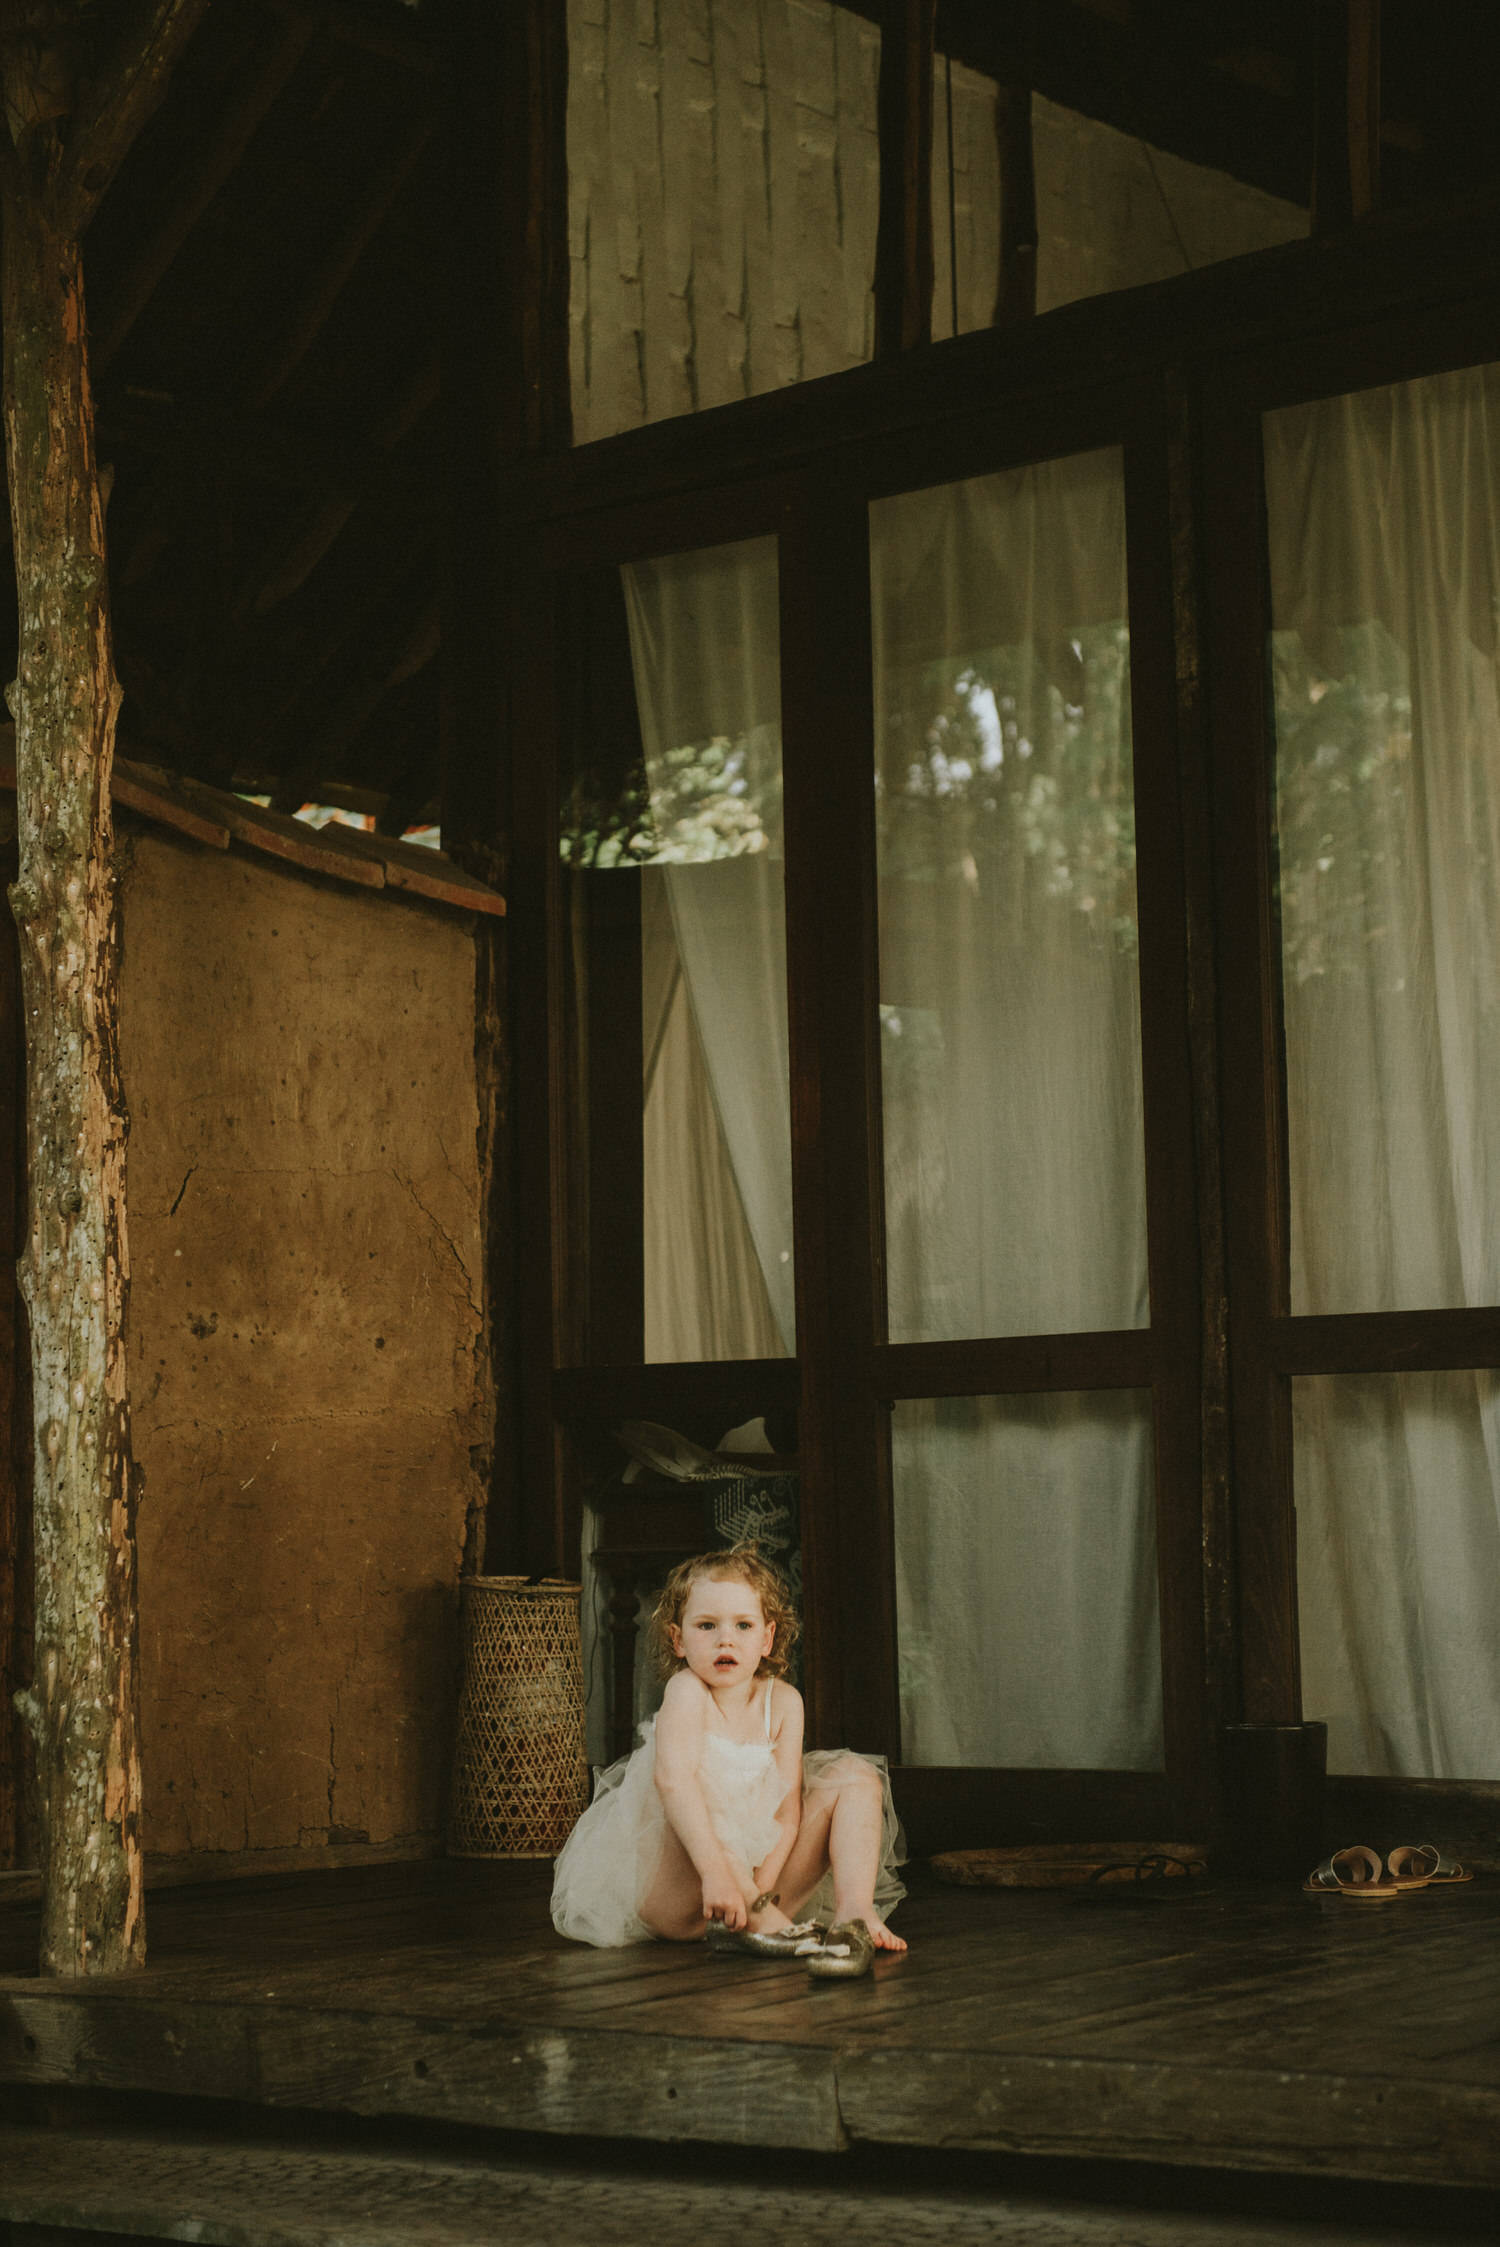 bali-wedding-ubud-wedding-wedding-destination-diktatphotography-kadek-artayasa-elaine-and-glenn-040